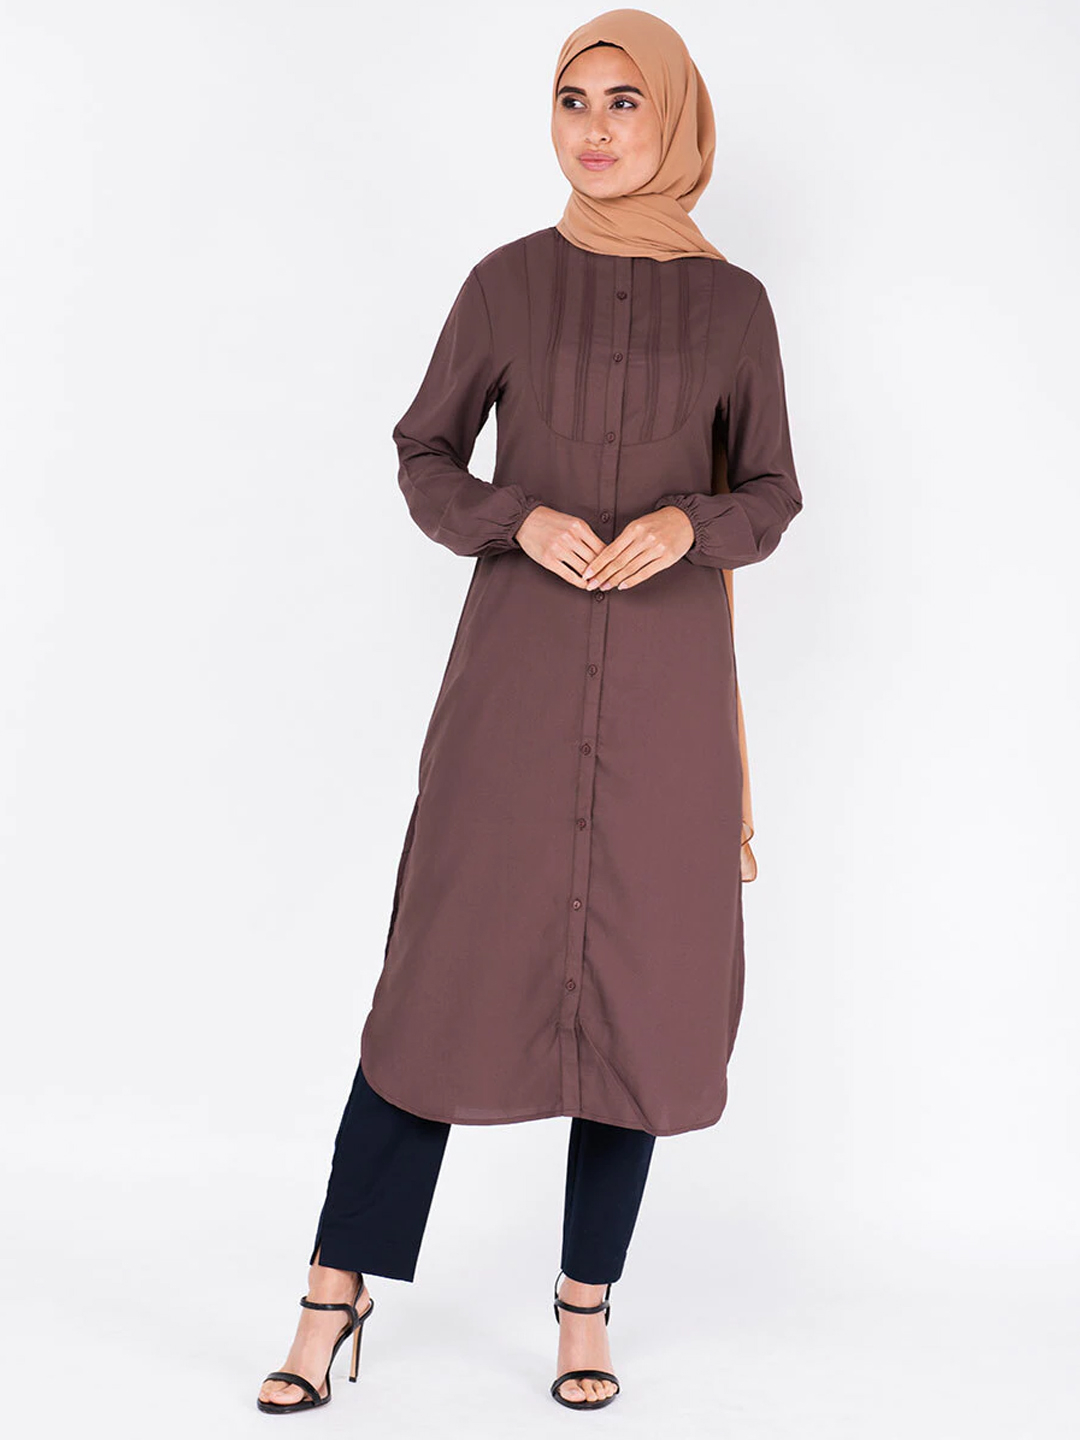 100% Polyester Midi Dress With Drawstring Sleeve In Cognac Brown